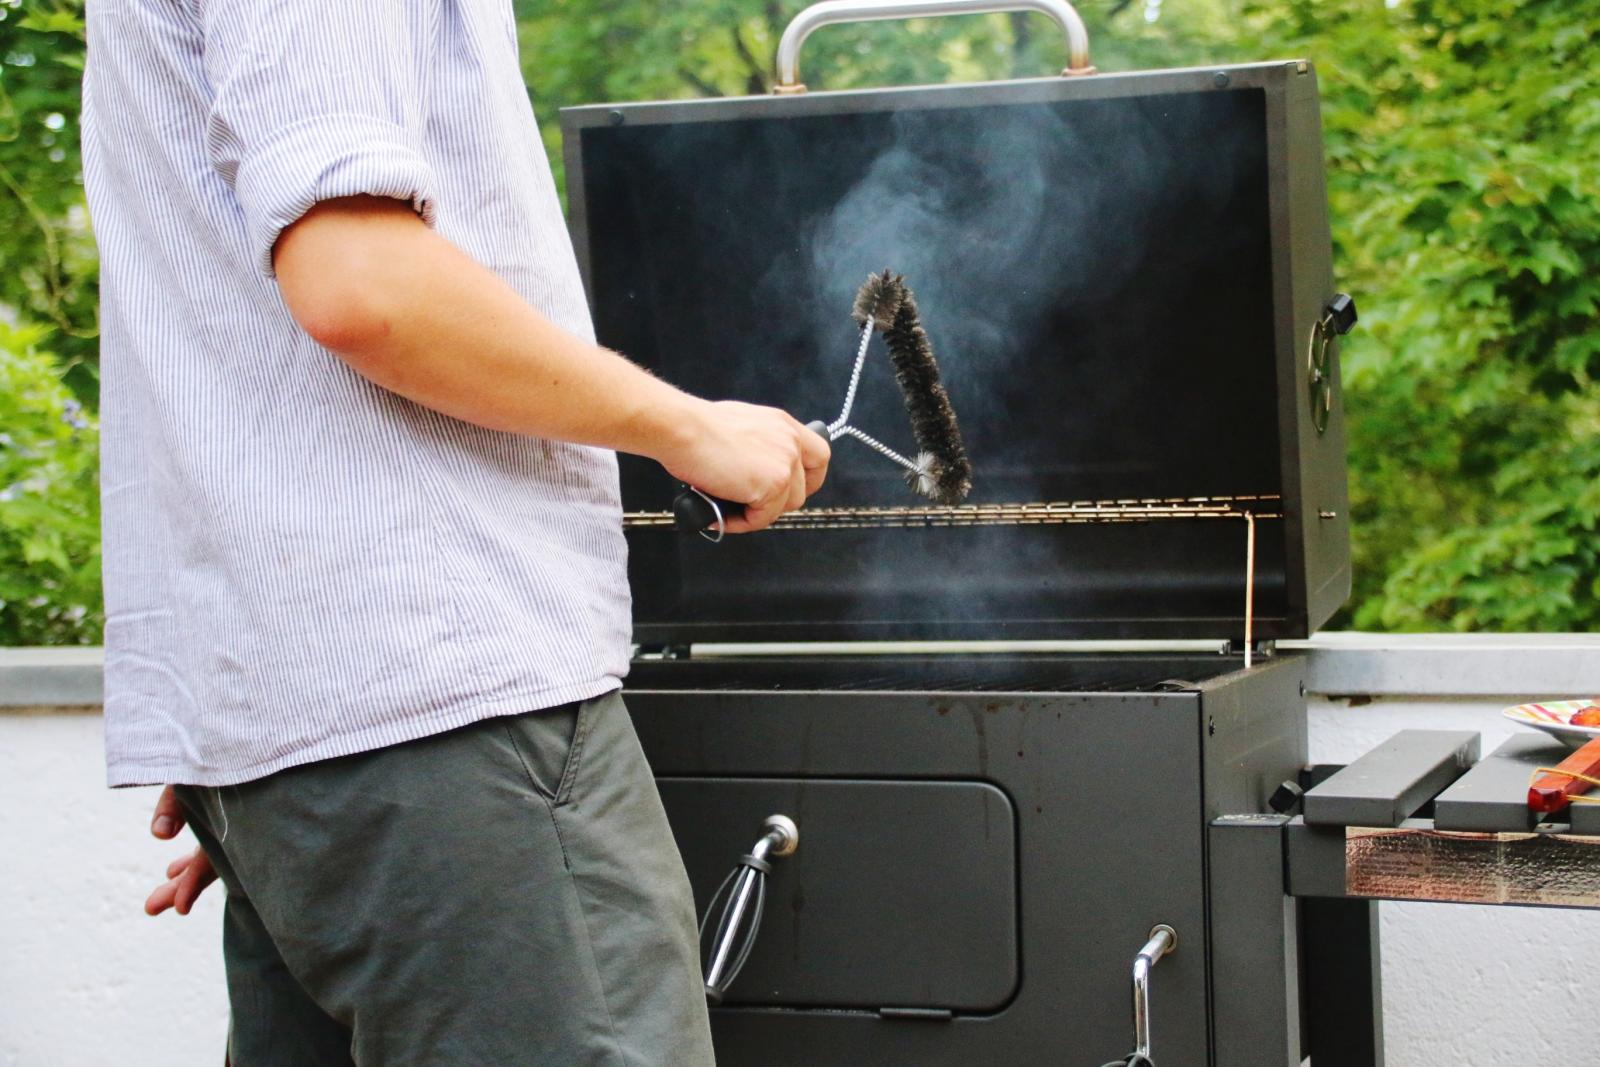 Man Cleaning Barbecue Grill With Wire Brush